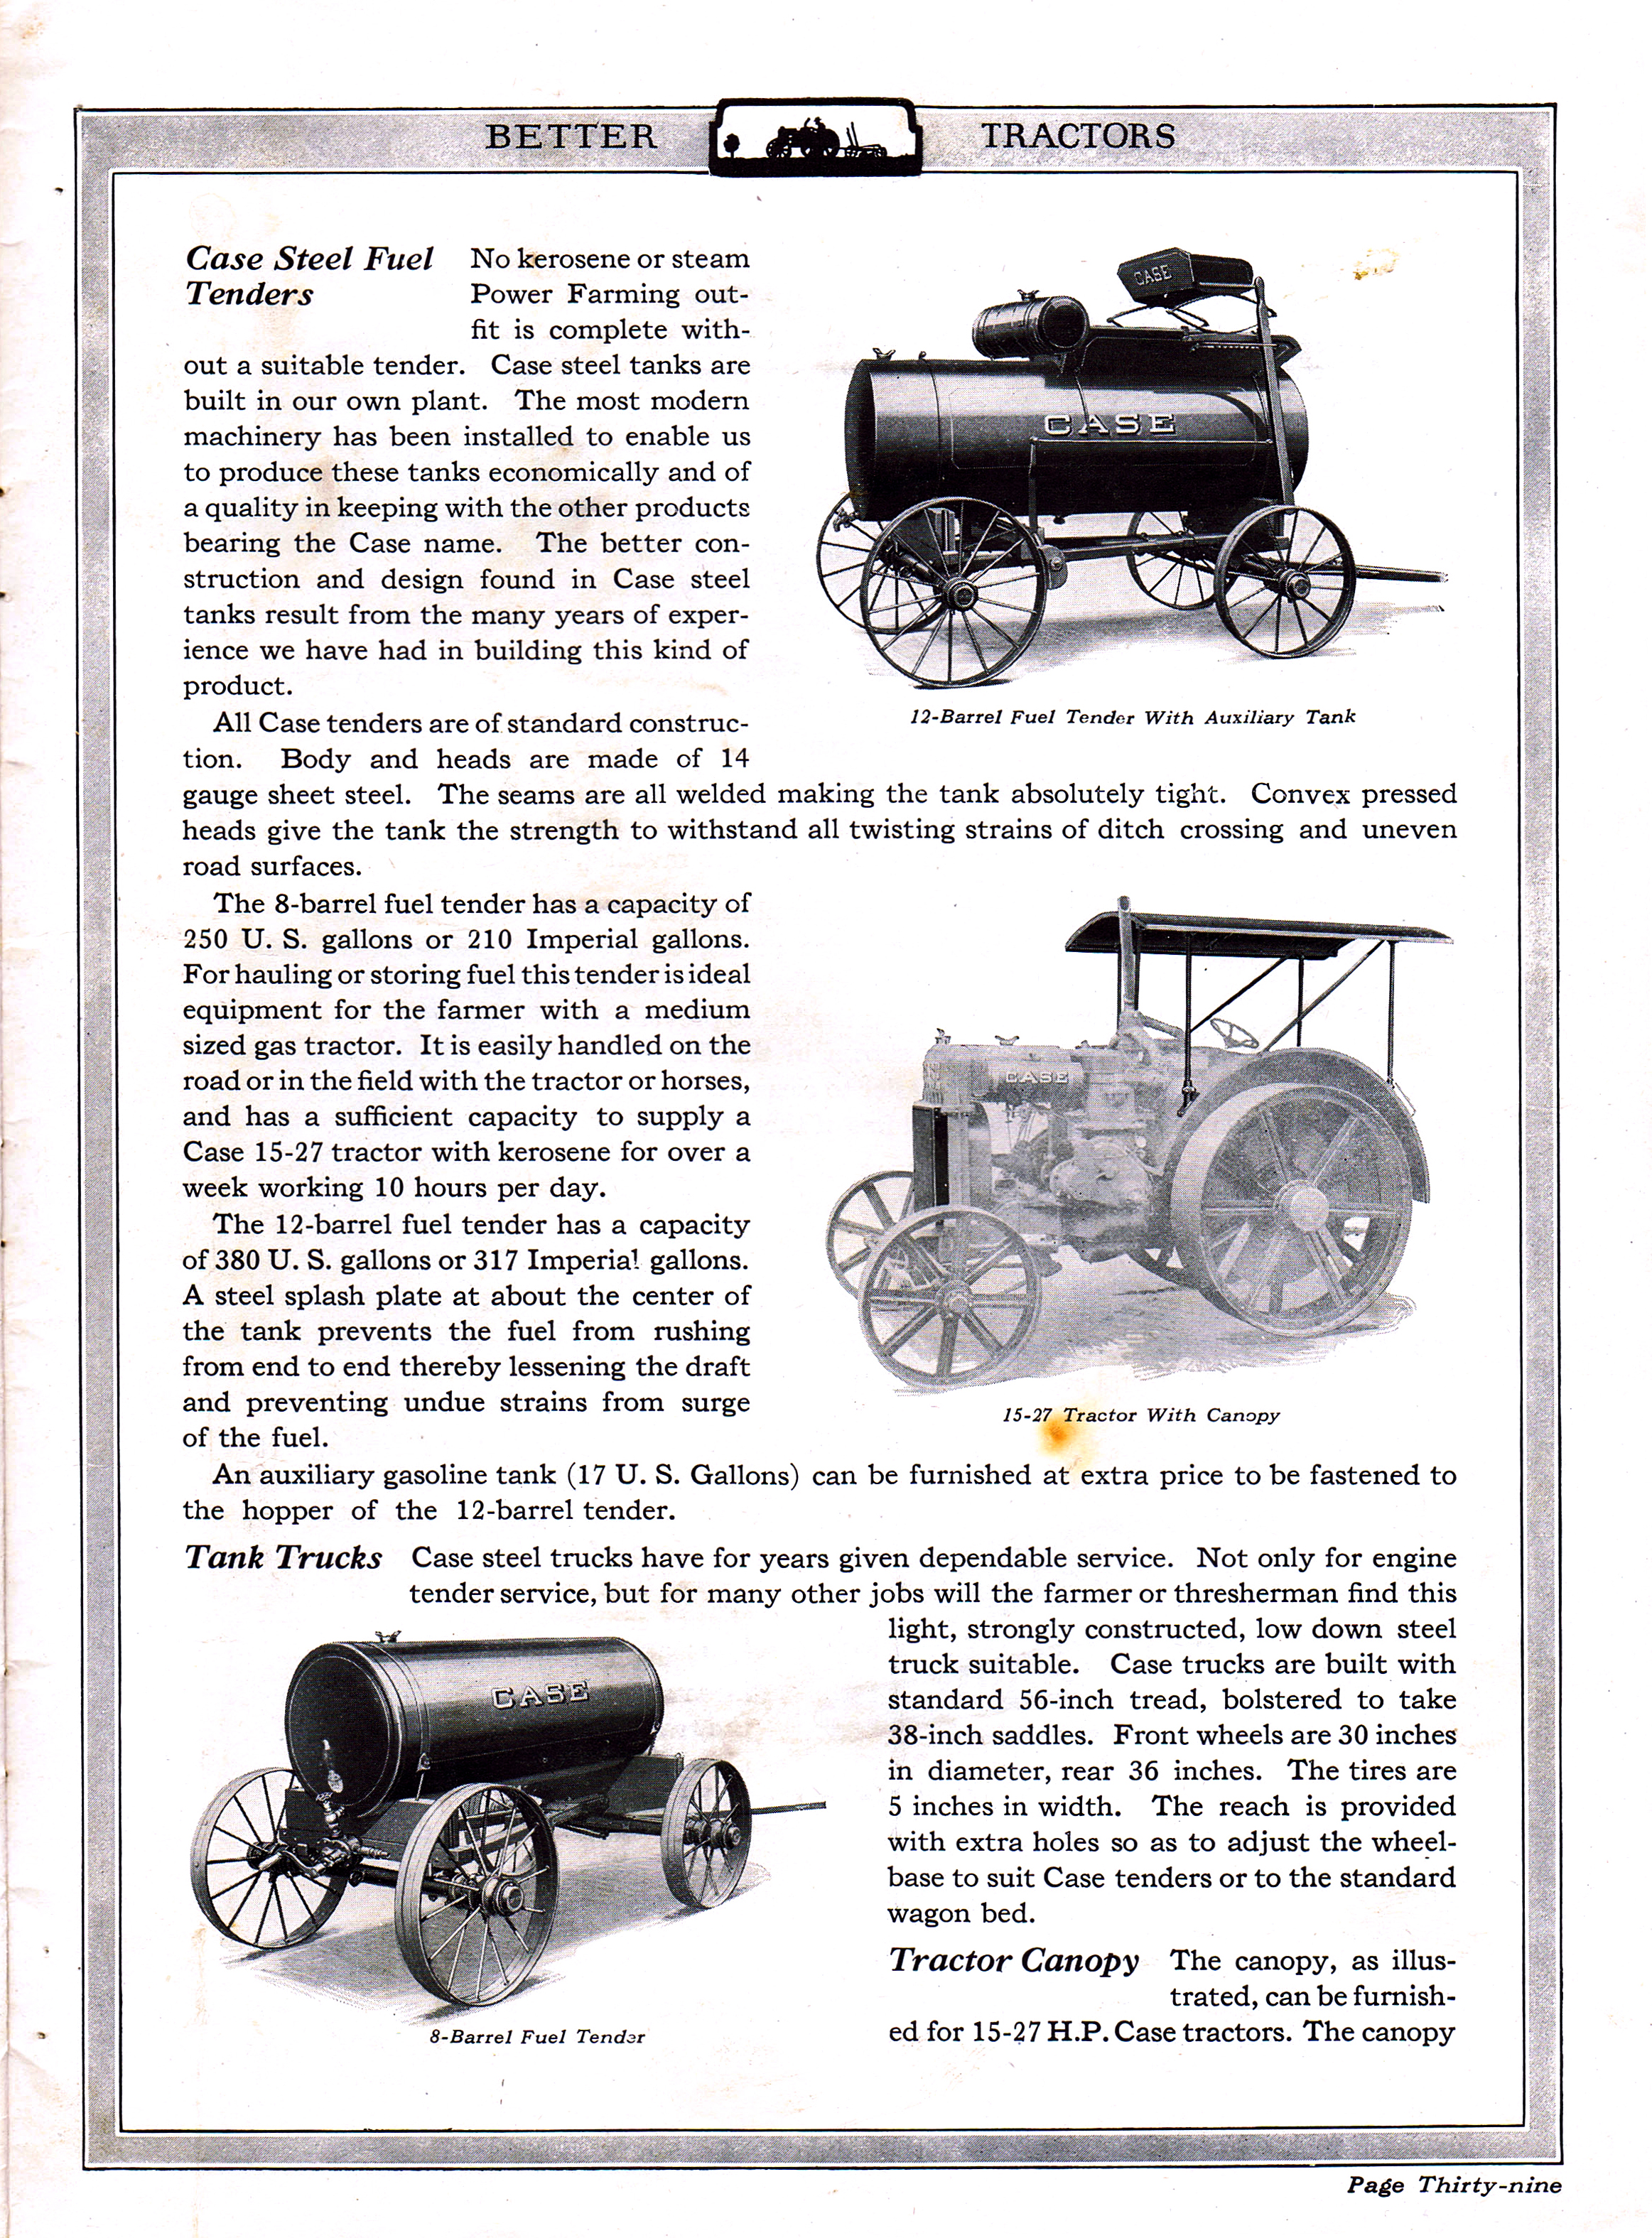 1924 Case: Better Farming With Better Tractors page 40 of 50